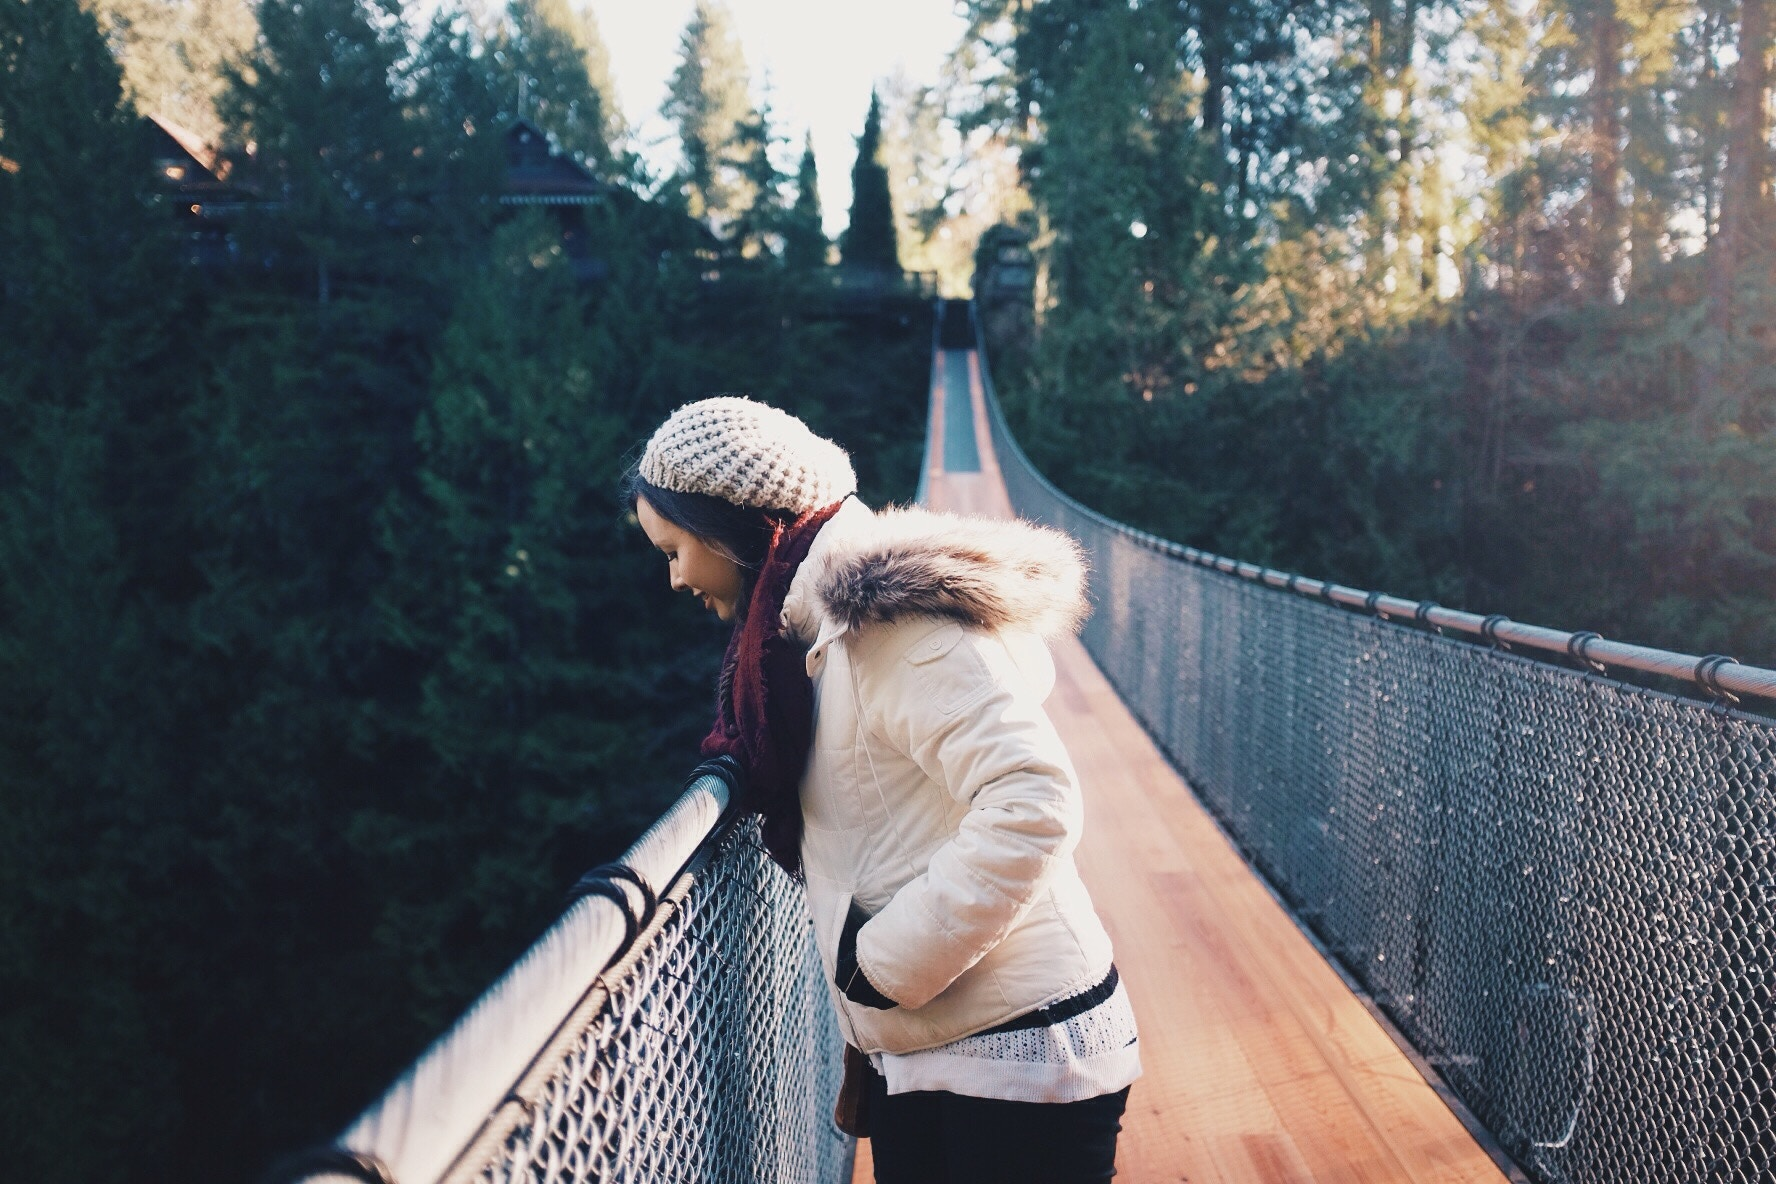 Capilano Suspension Bridge_photographer Isaac Viglione